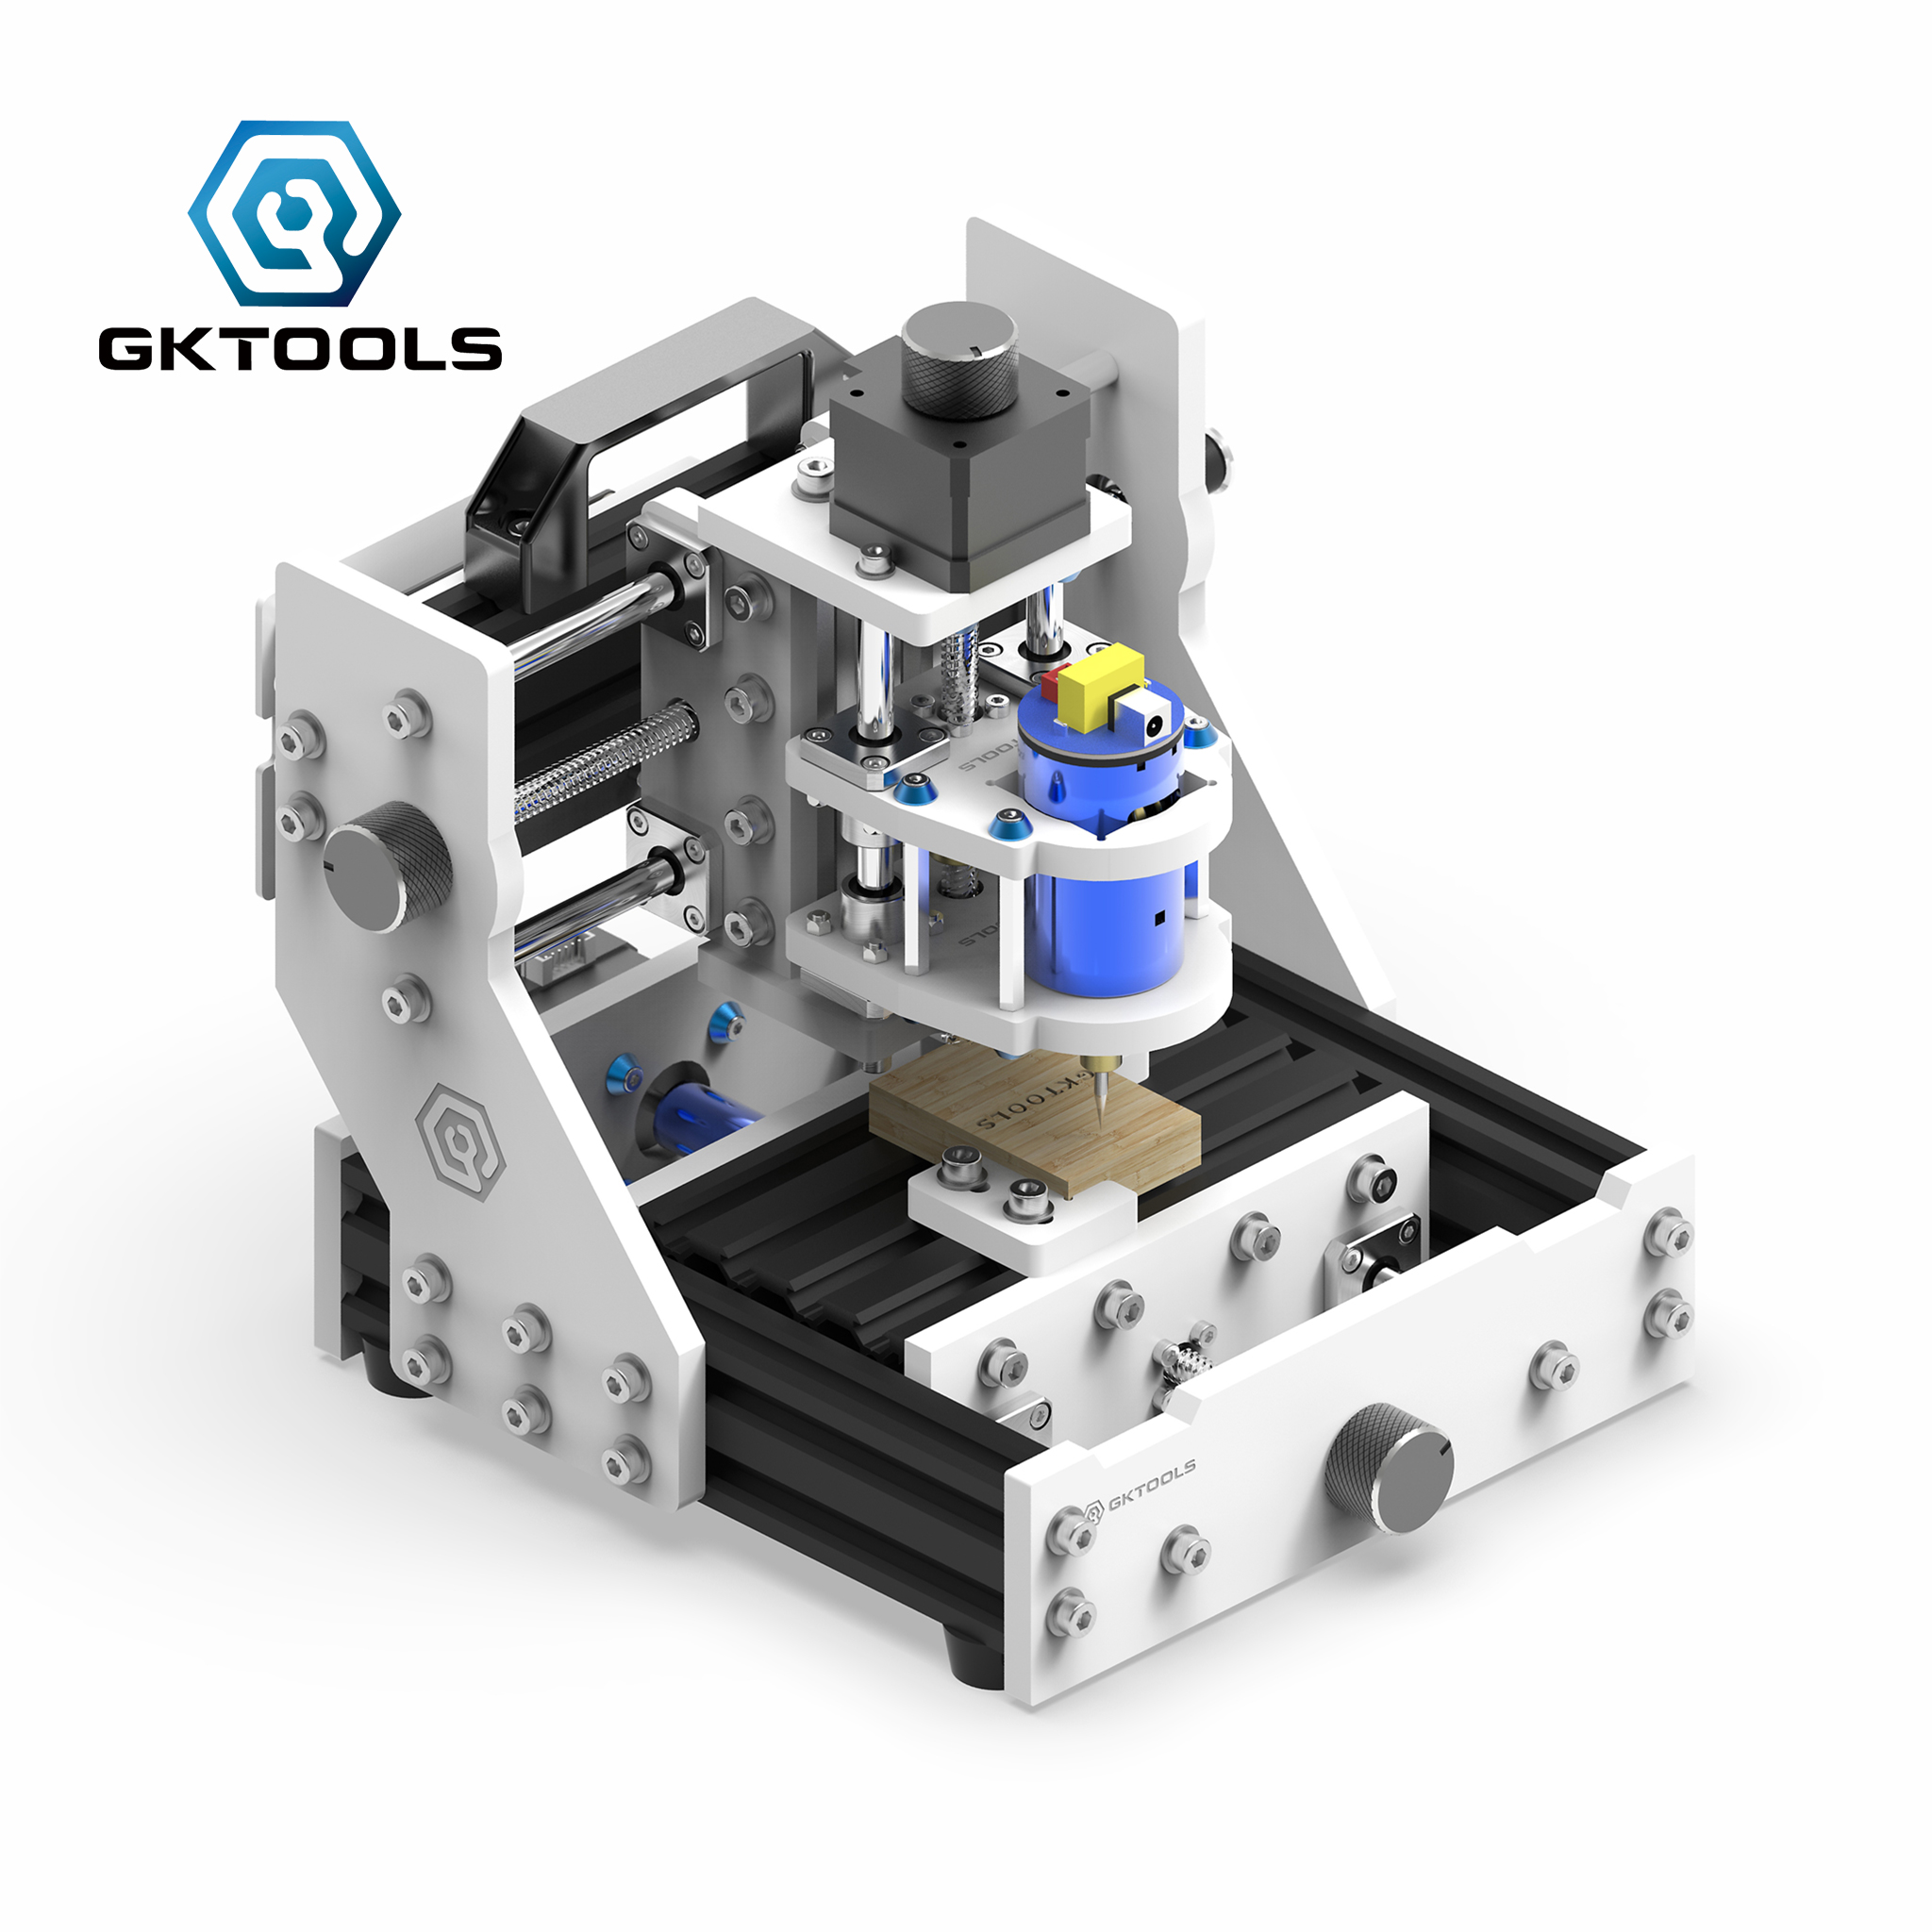 GKTOOLS Free Shipping Desktop CNC 1309 DIY GRBL Hobby Mini Engraving Router Wood Carving Engrave PCB Milling Mill Cutter Machine